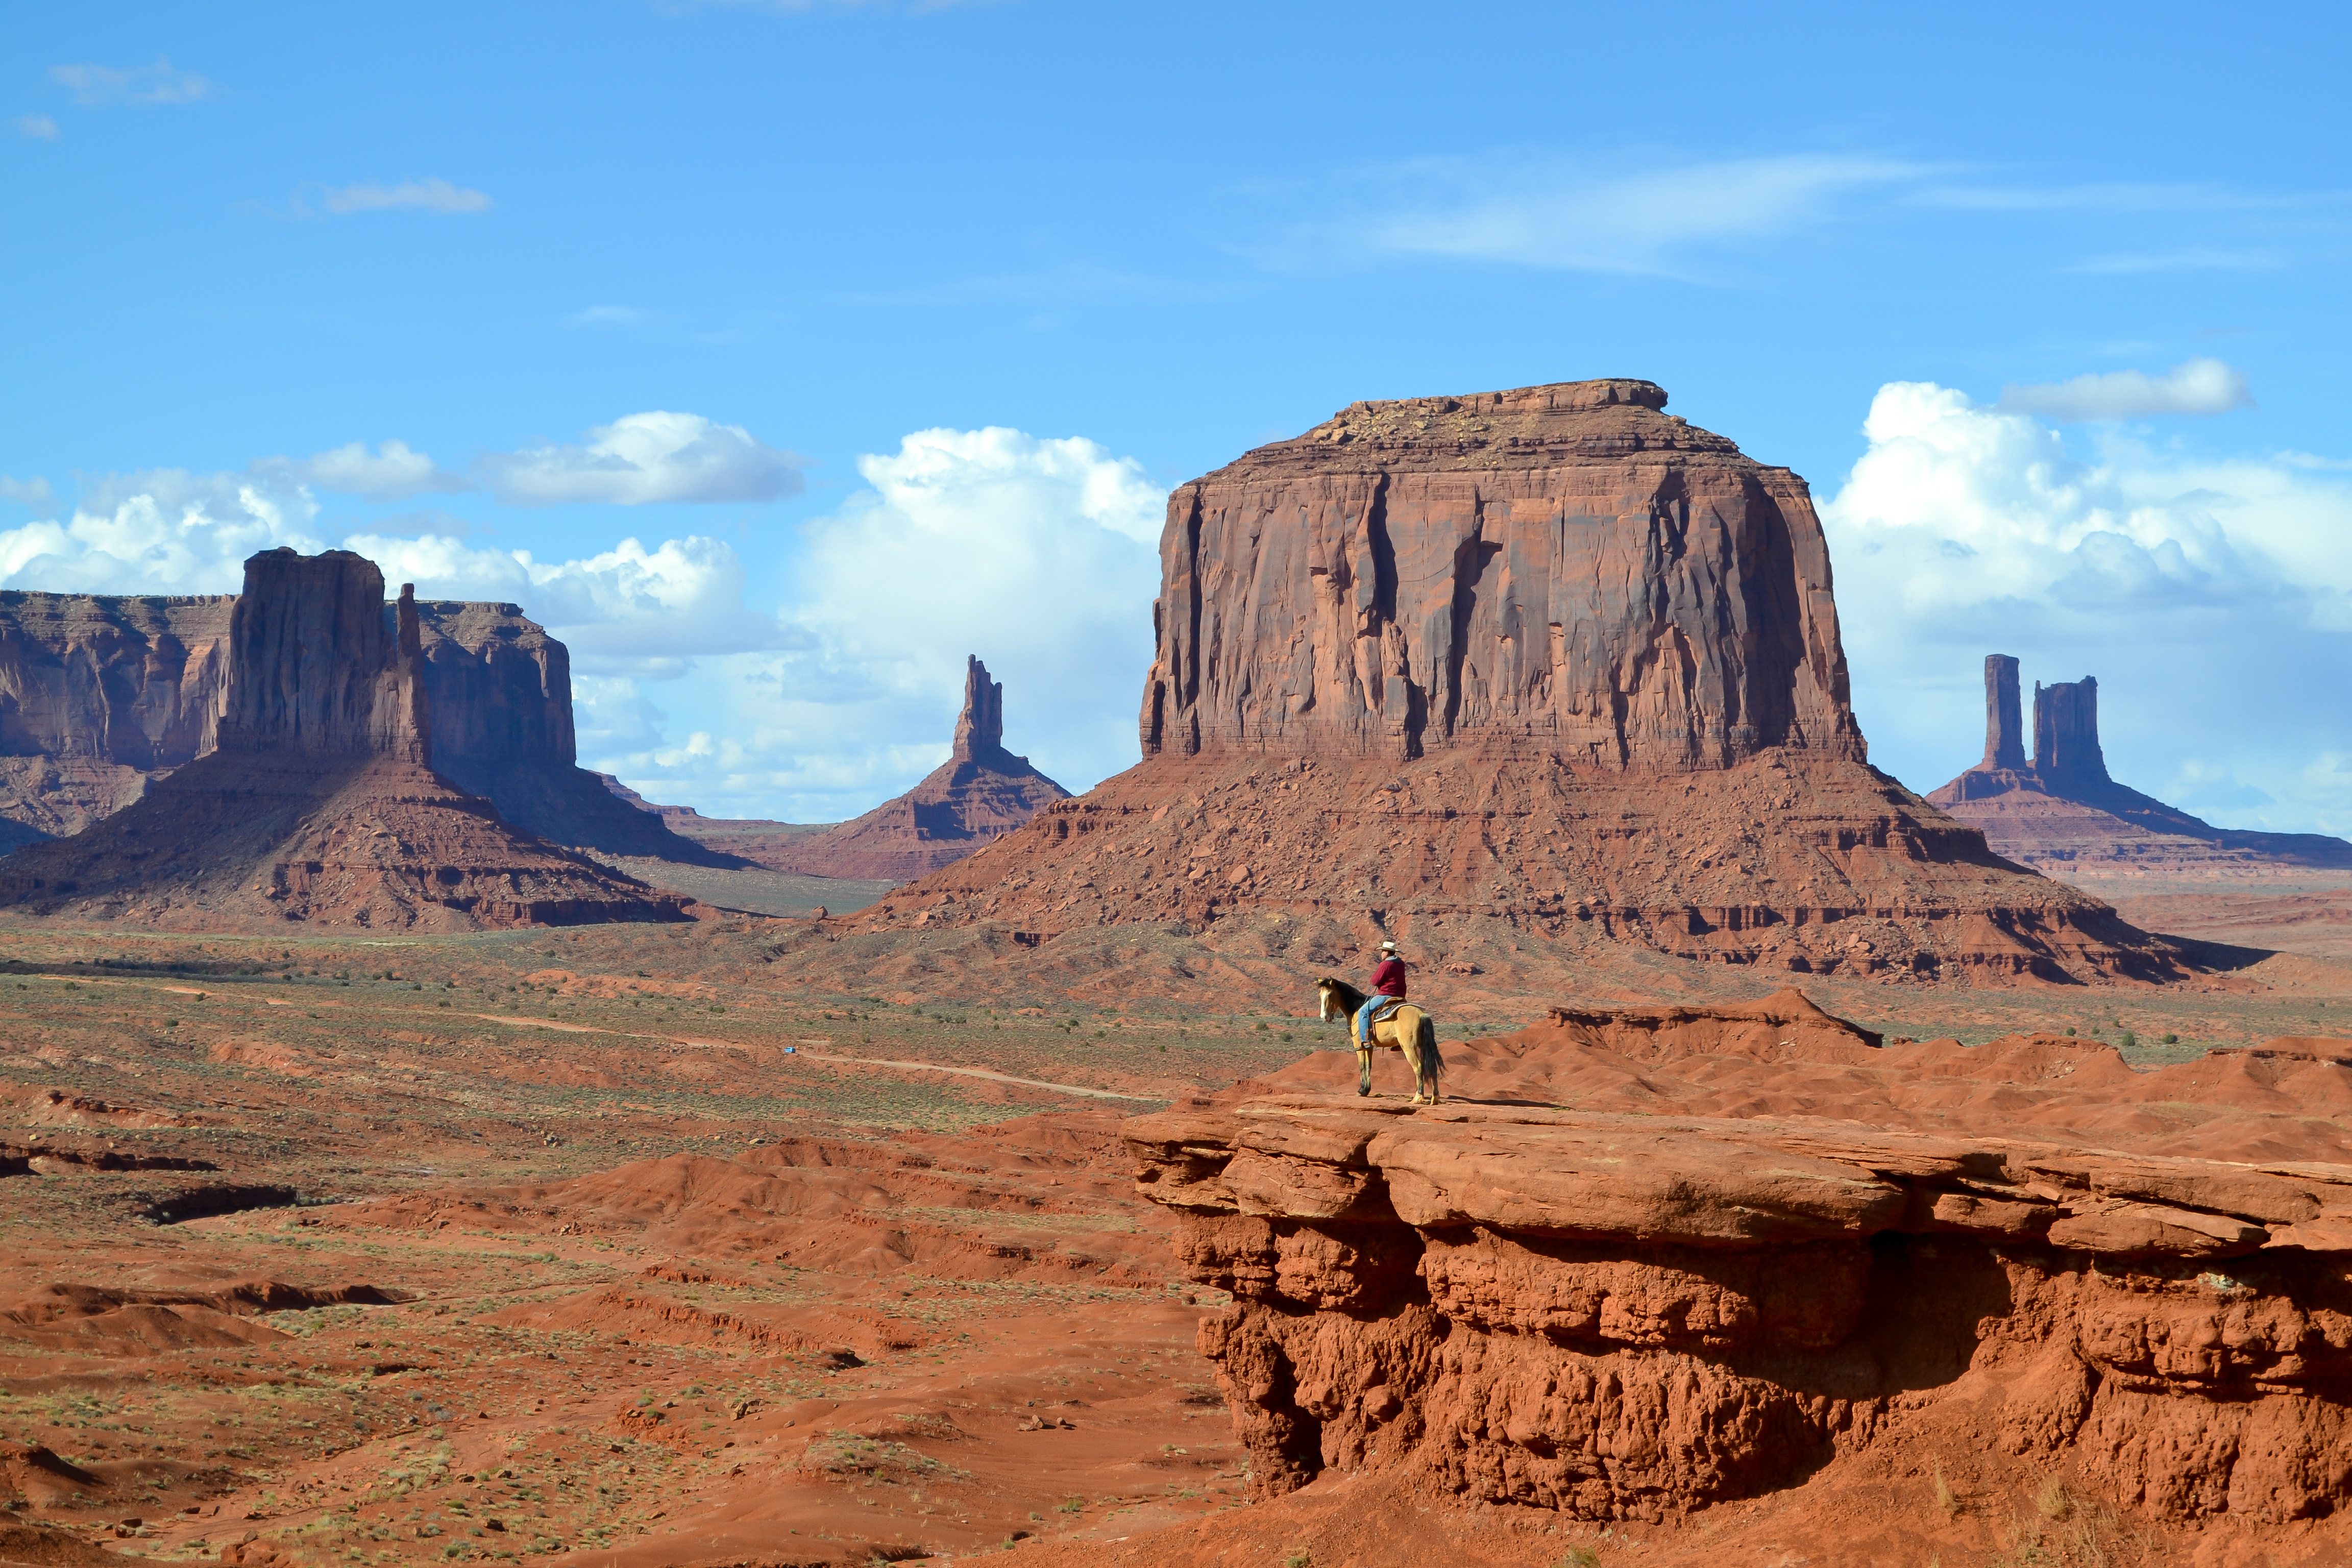 Valley Tours Monument Valley Tour: Tips + Photographs